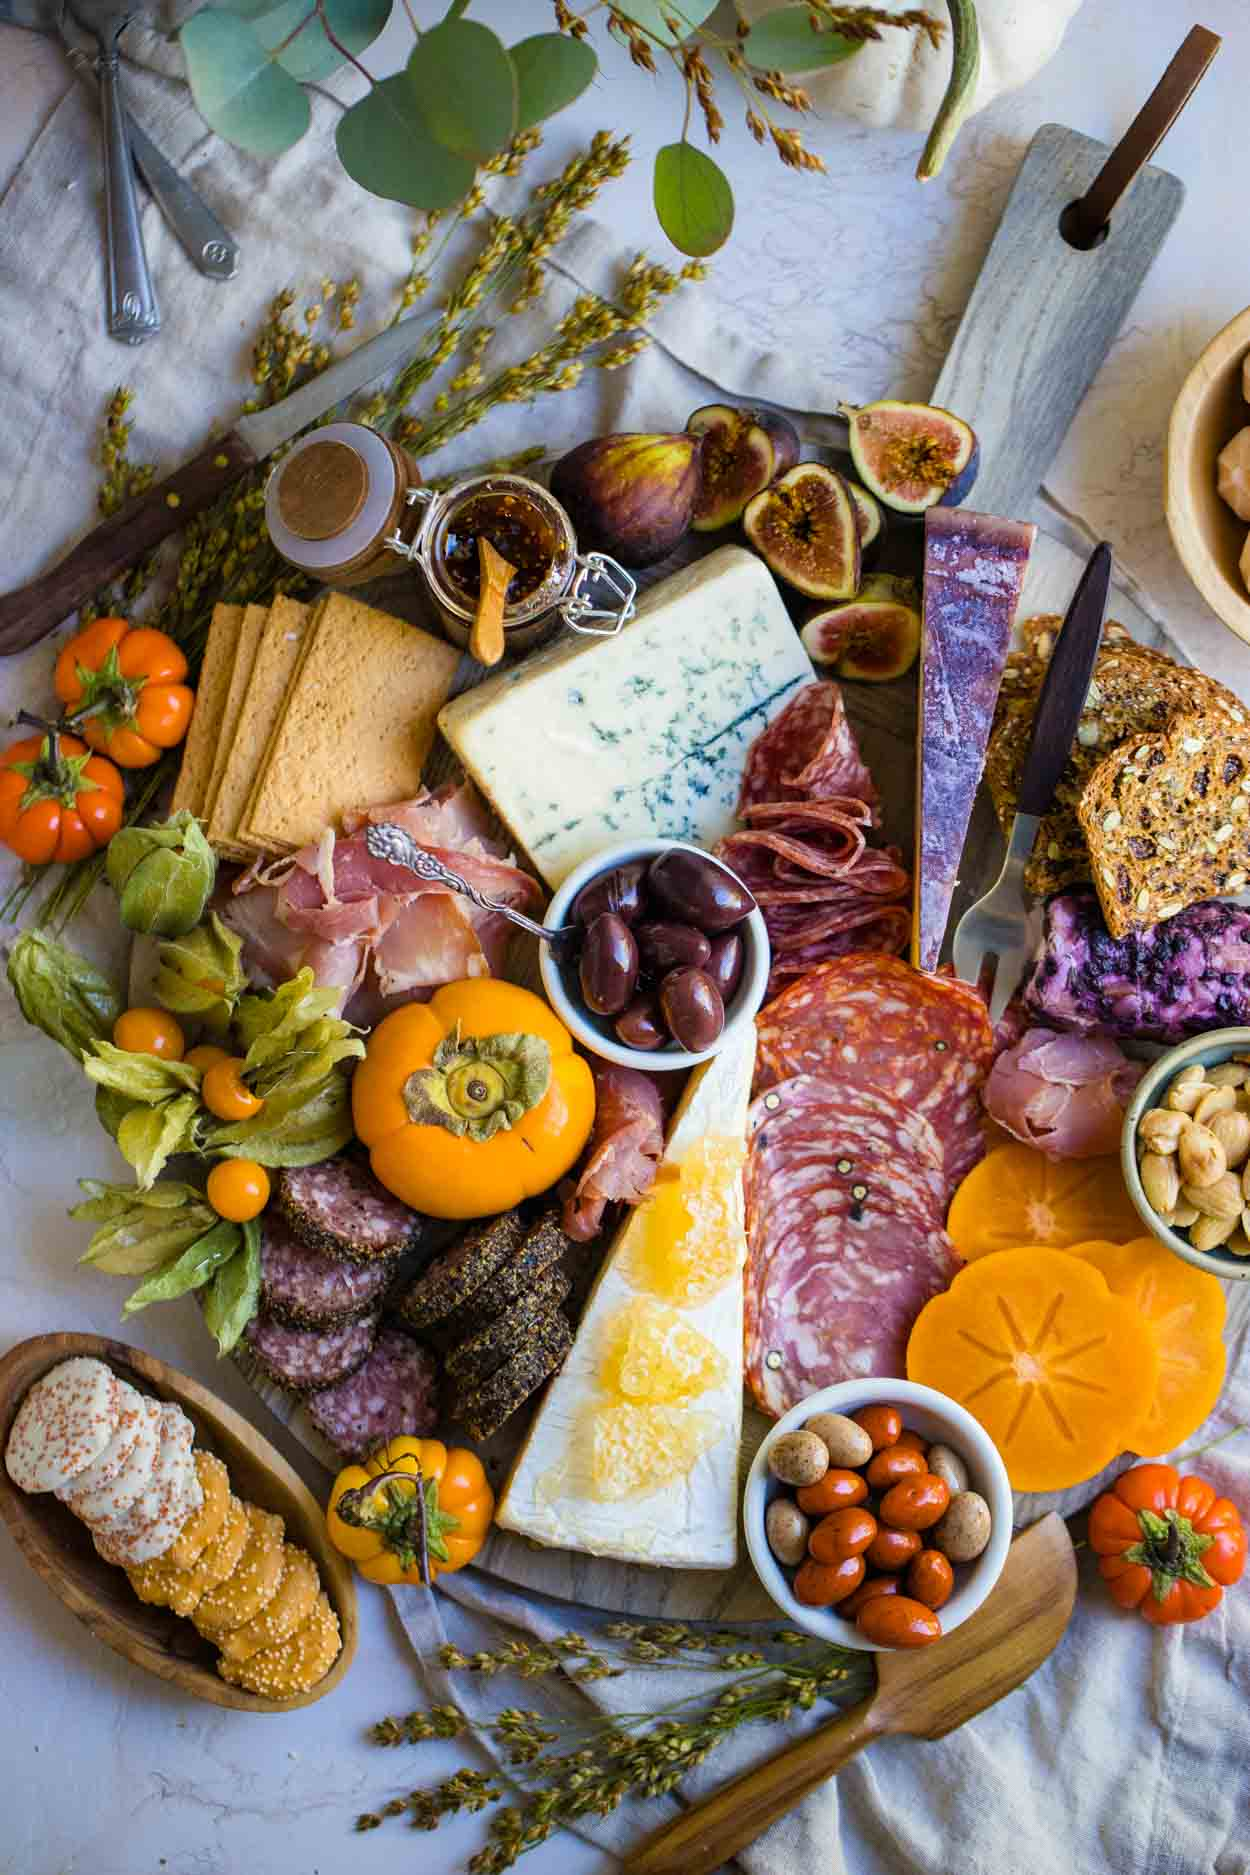 a charcuterie board with meats, cheese, and other foods